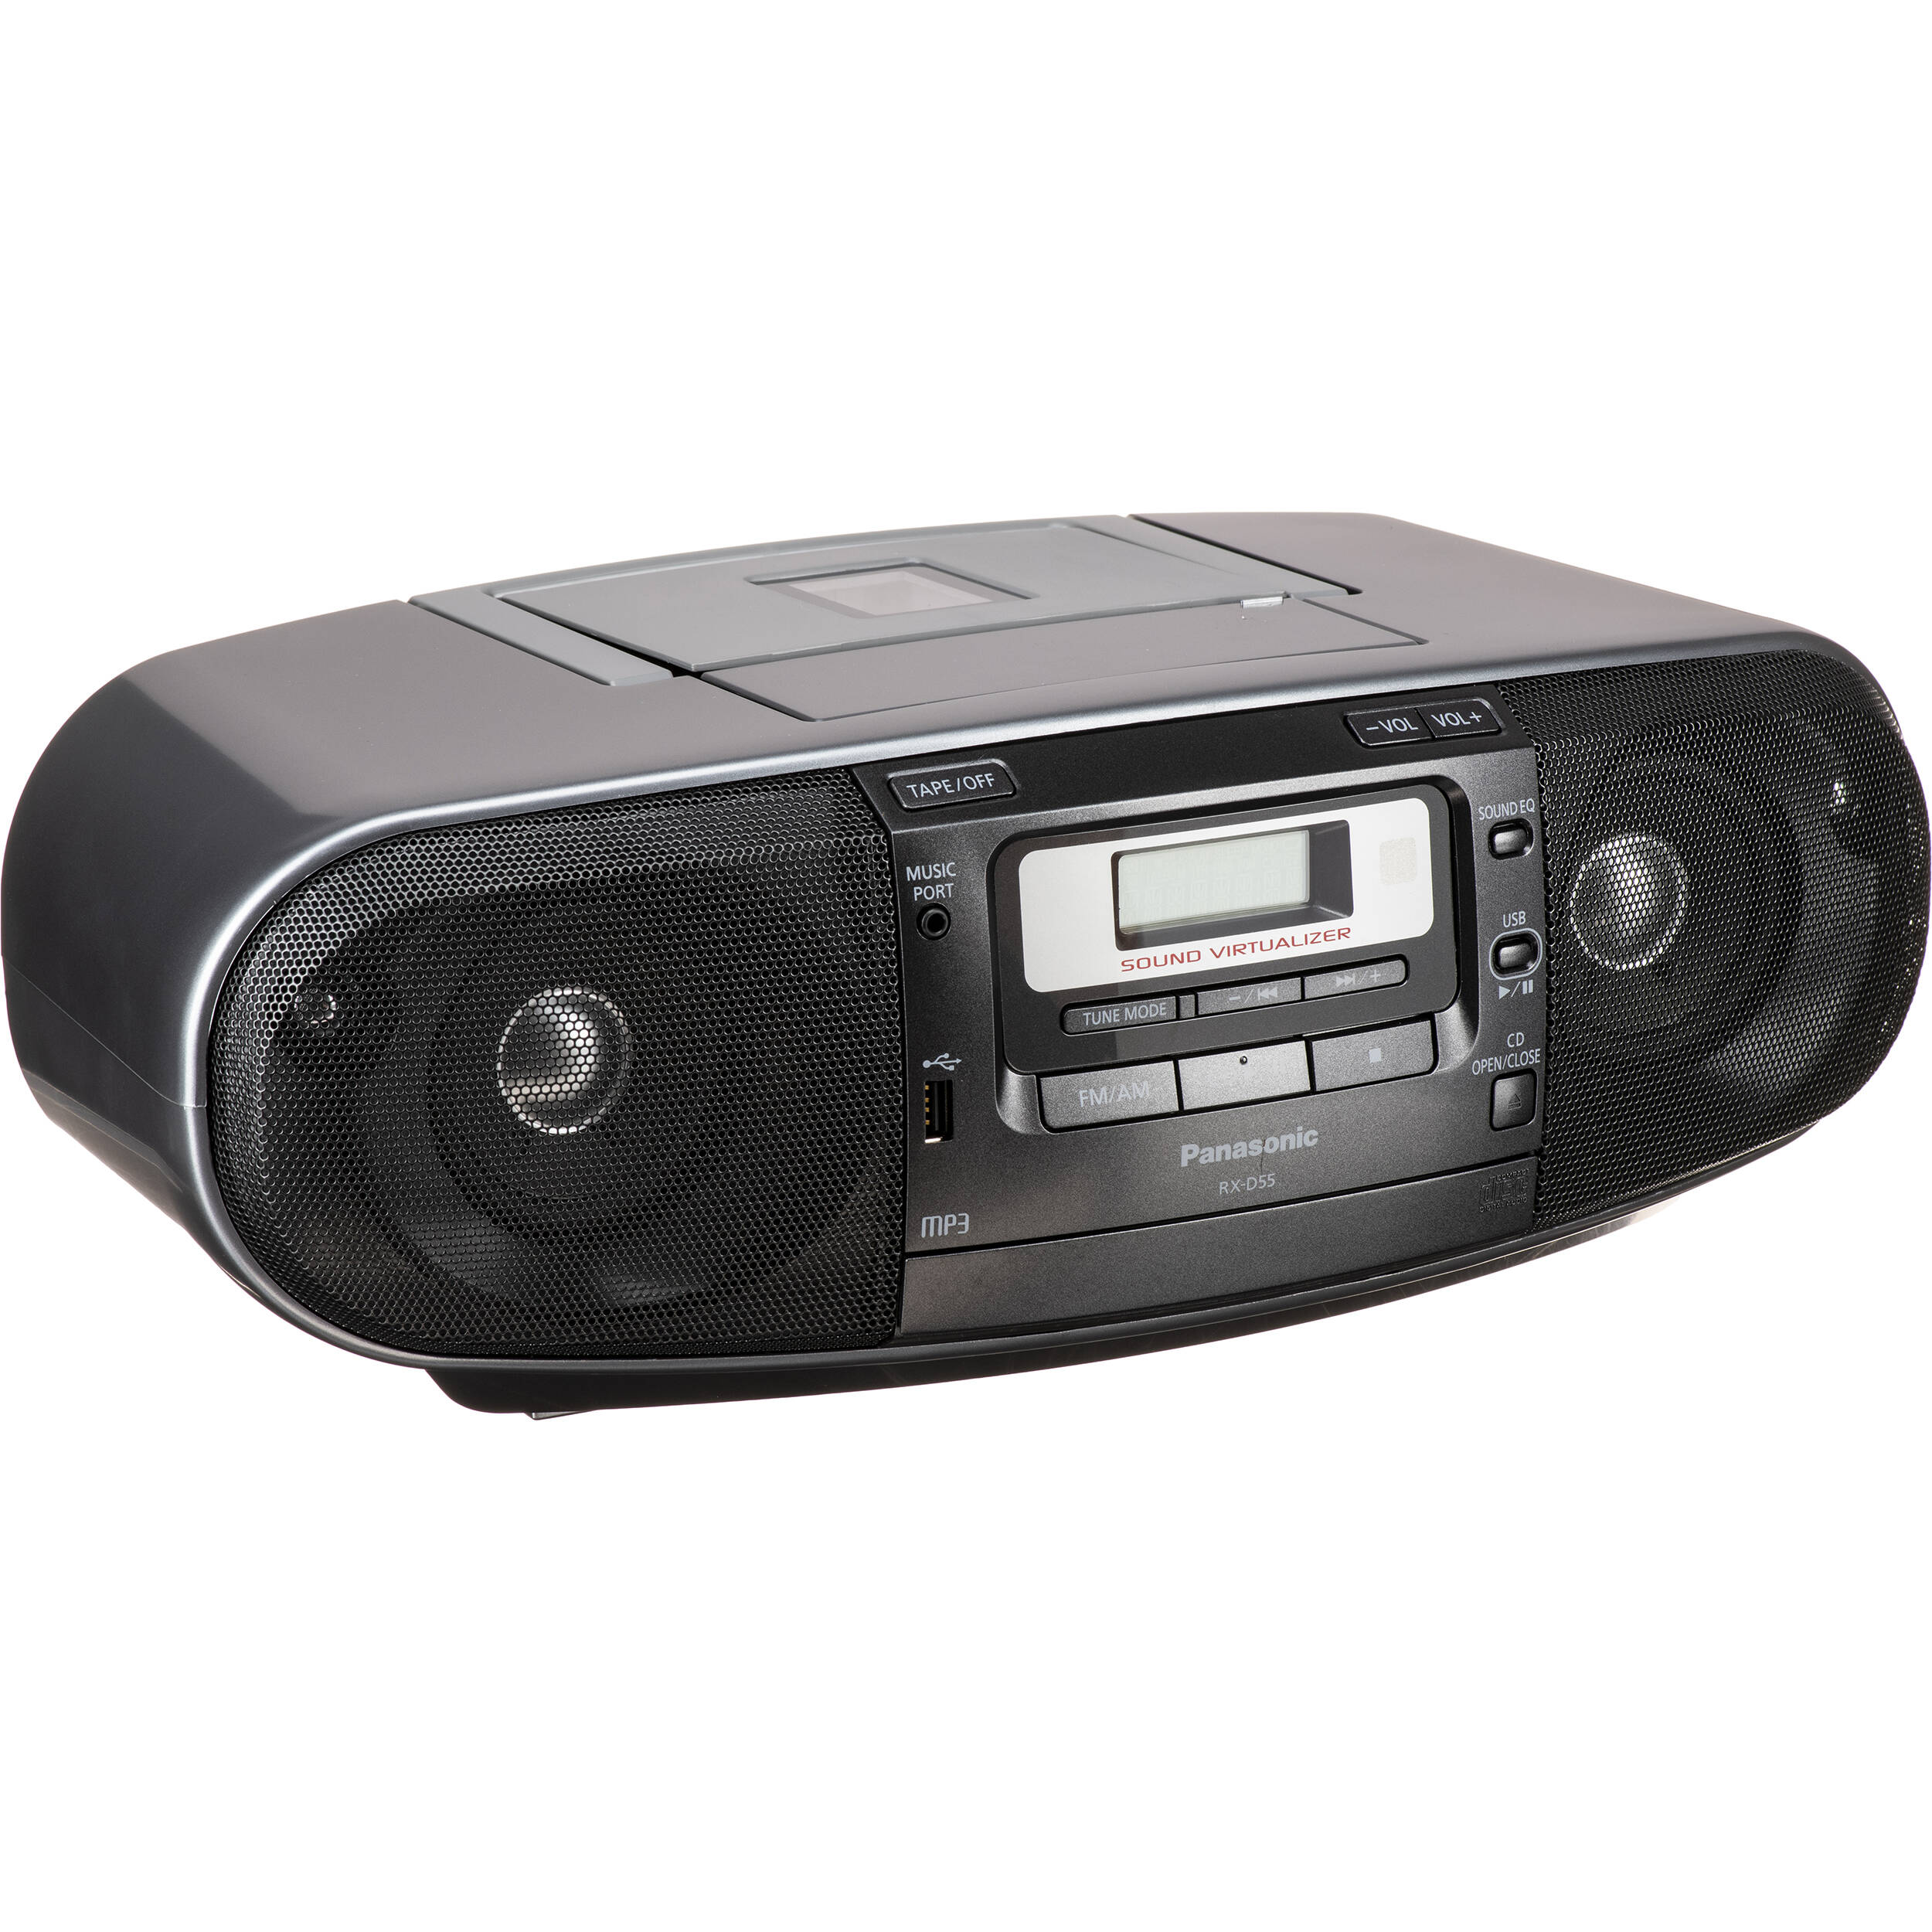 philips model cd mp x850 stereo system manual